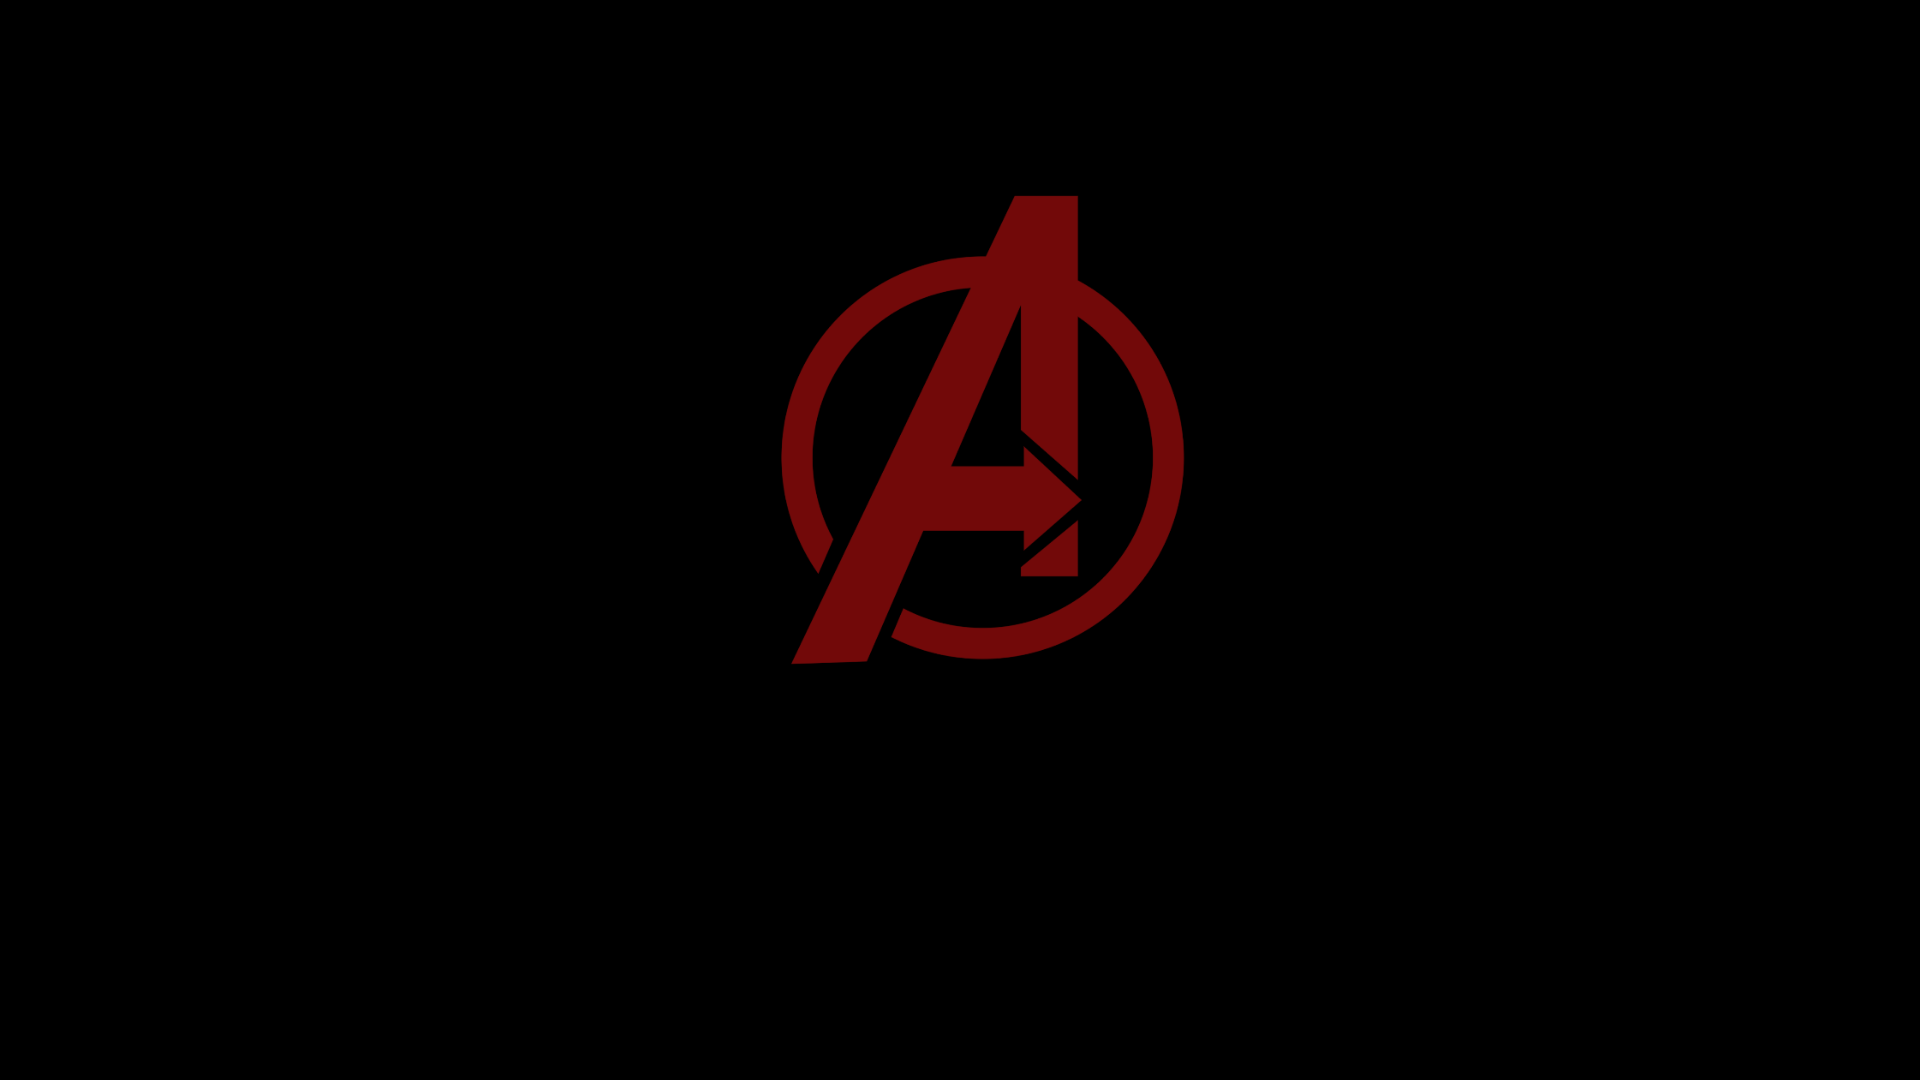 free download avengers logo wallpaper in red on black hd retina ready and 1920x1200 for your desktop mobile tablet explore 71 avengers logo wallpaper shield logo wallpaper avengers computer wallpaper free download avengers logo wallpaper